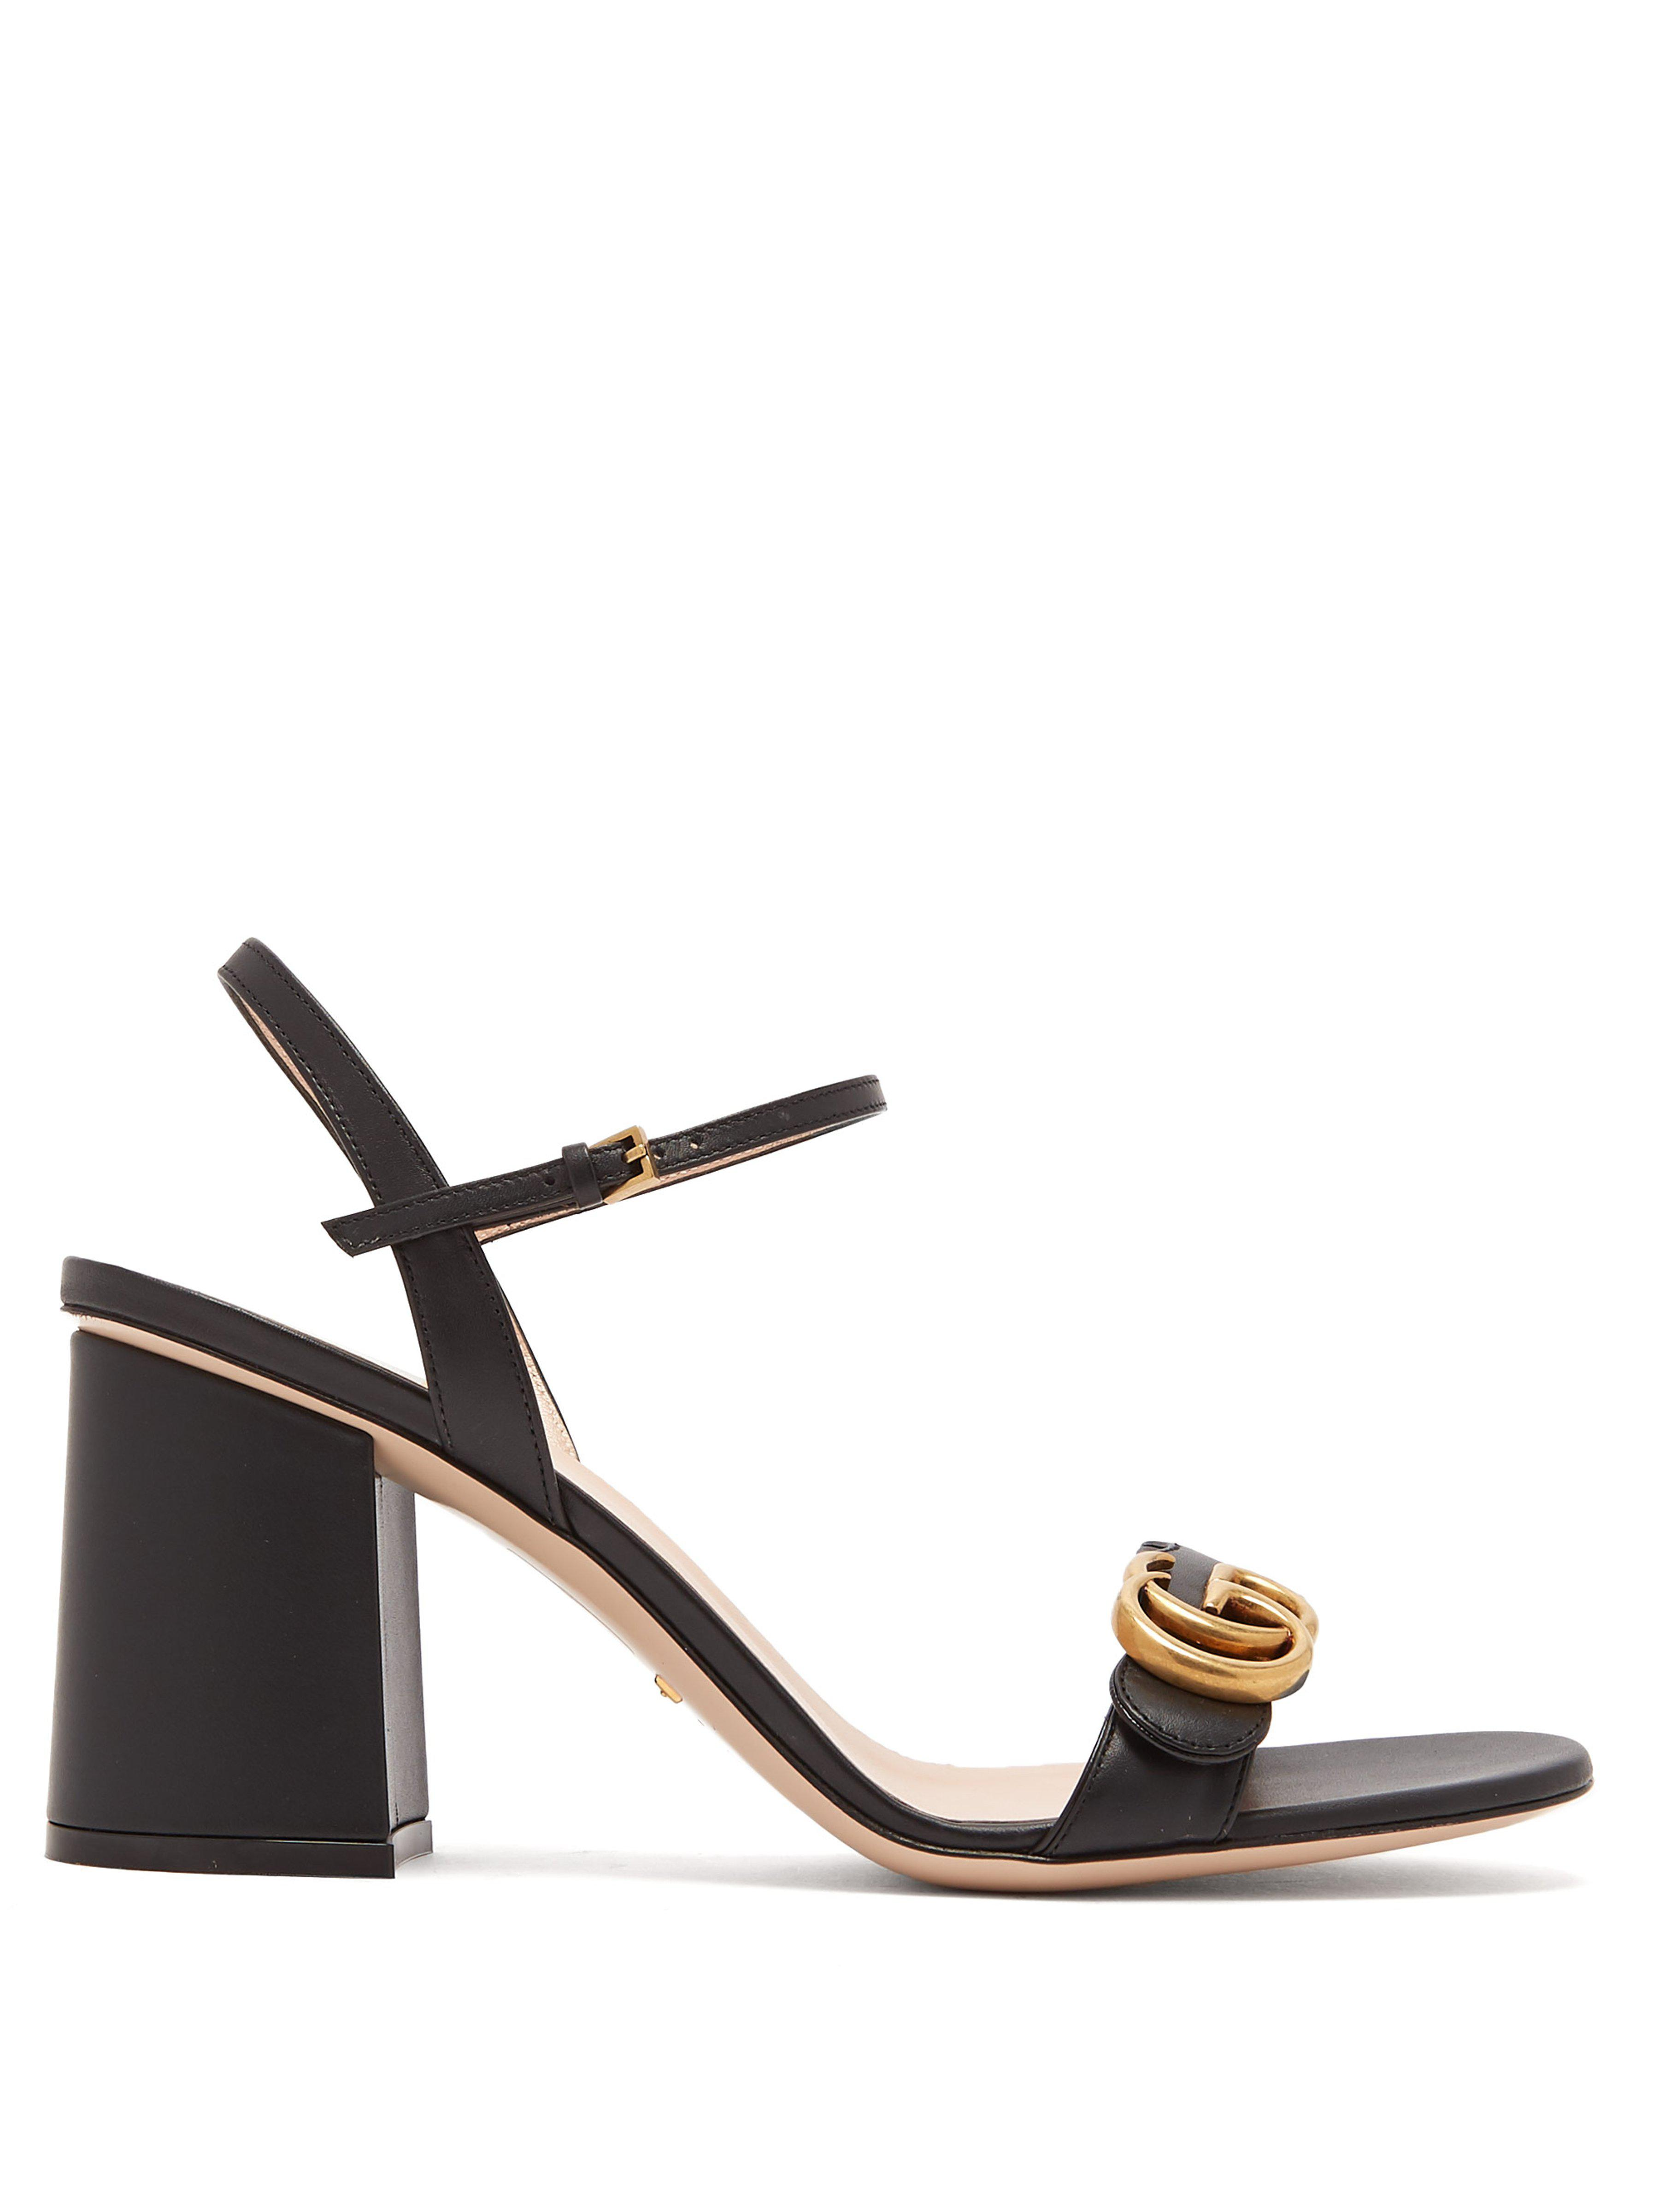 6e32e030fac3 Gucci Marmont Embellished Leather Sandals in Black - Save 10% - Lyst